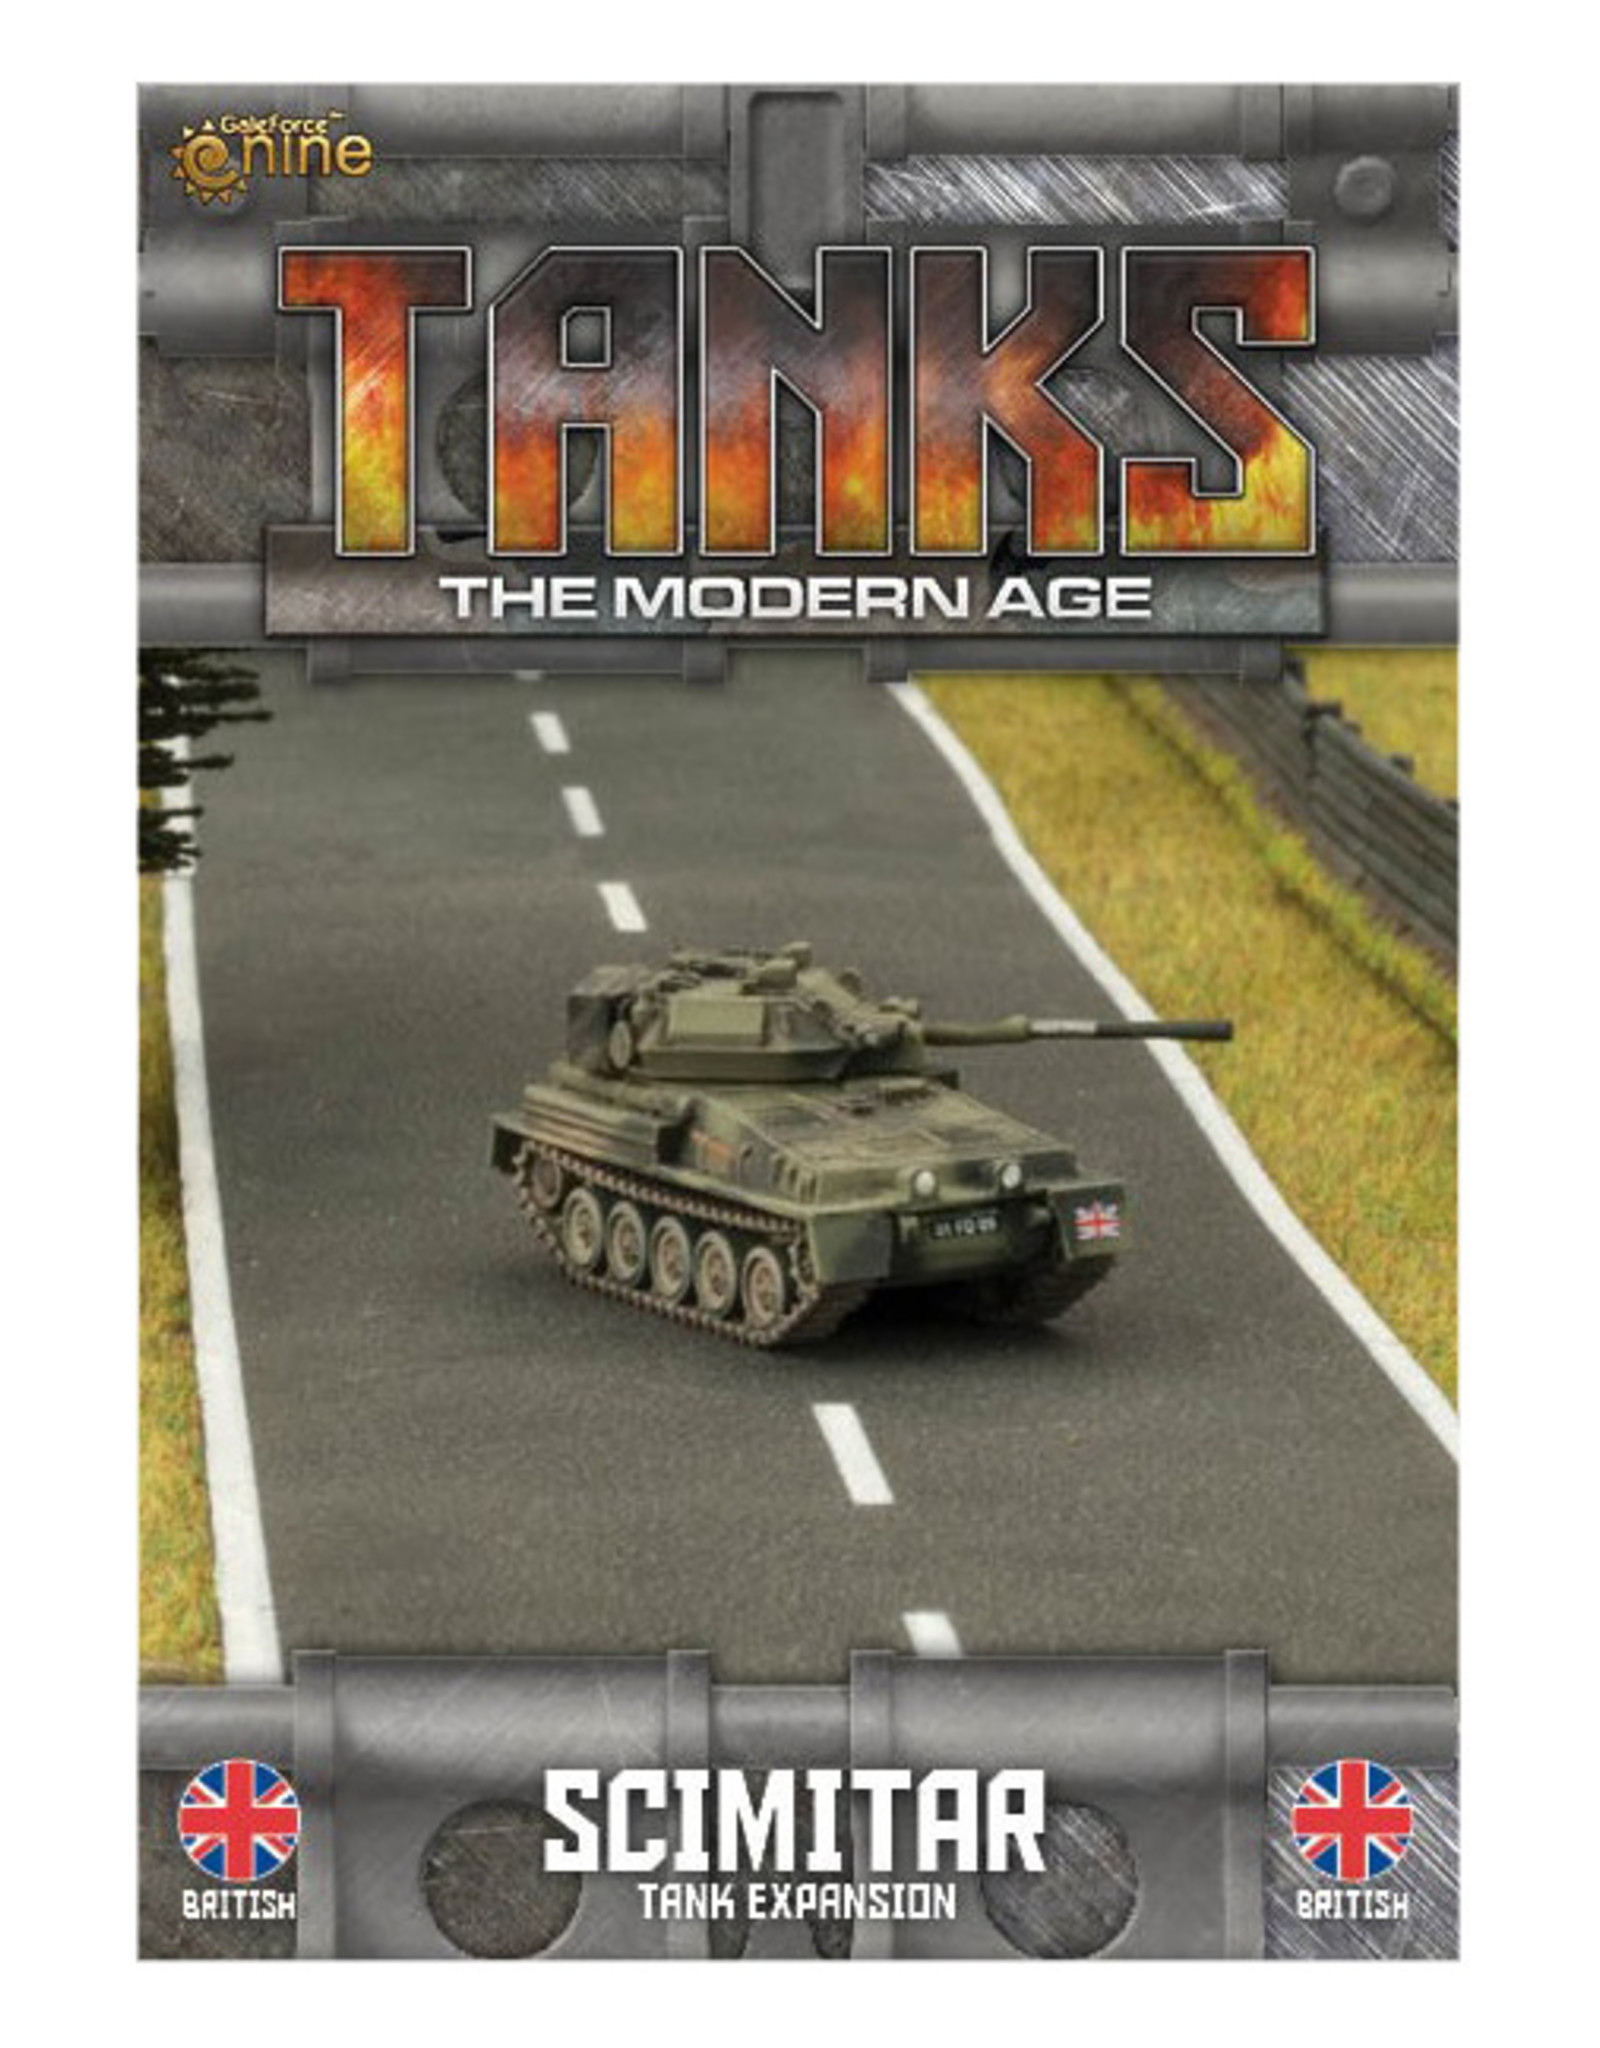 Battlefront Miniatures Ltd TANKS | Birtish Scimitar/Scorpion Tank Expansion